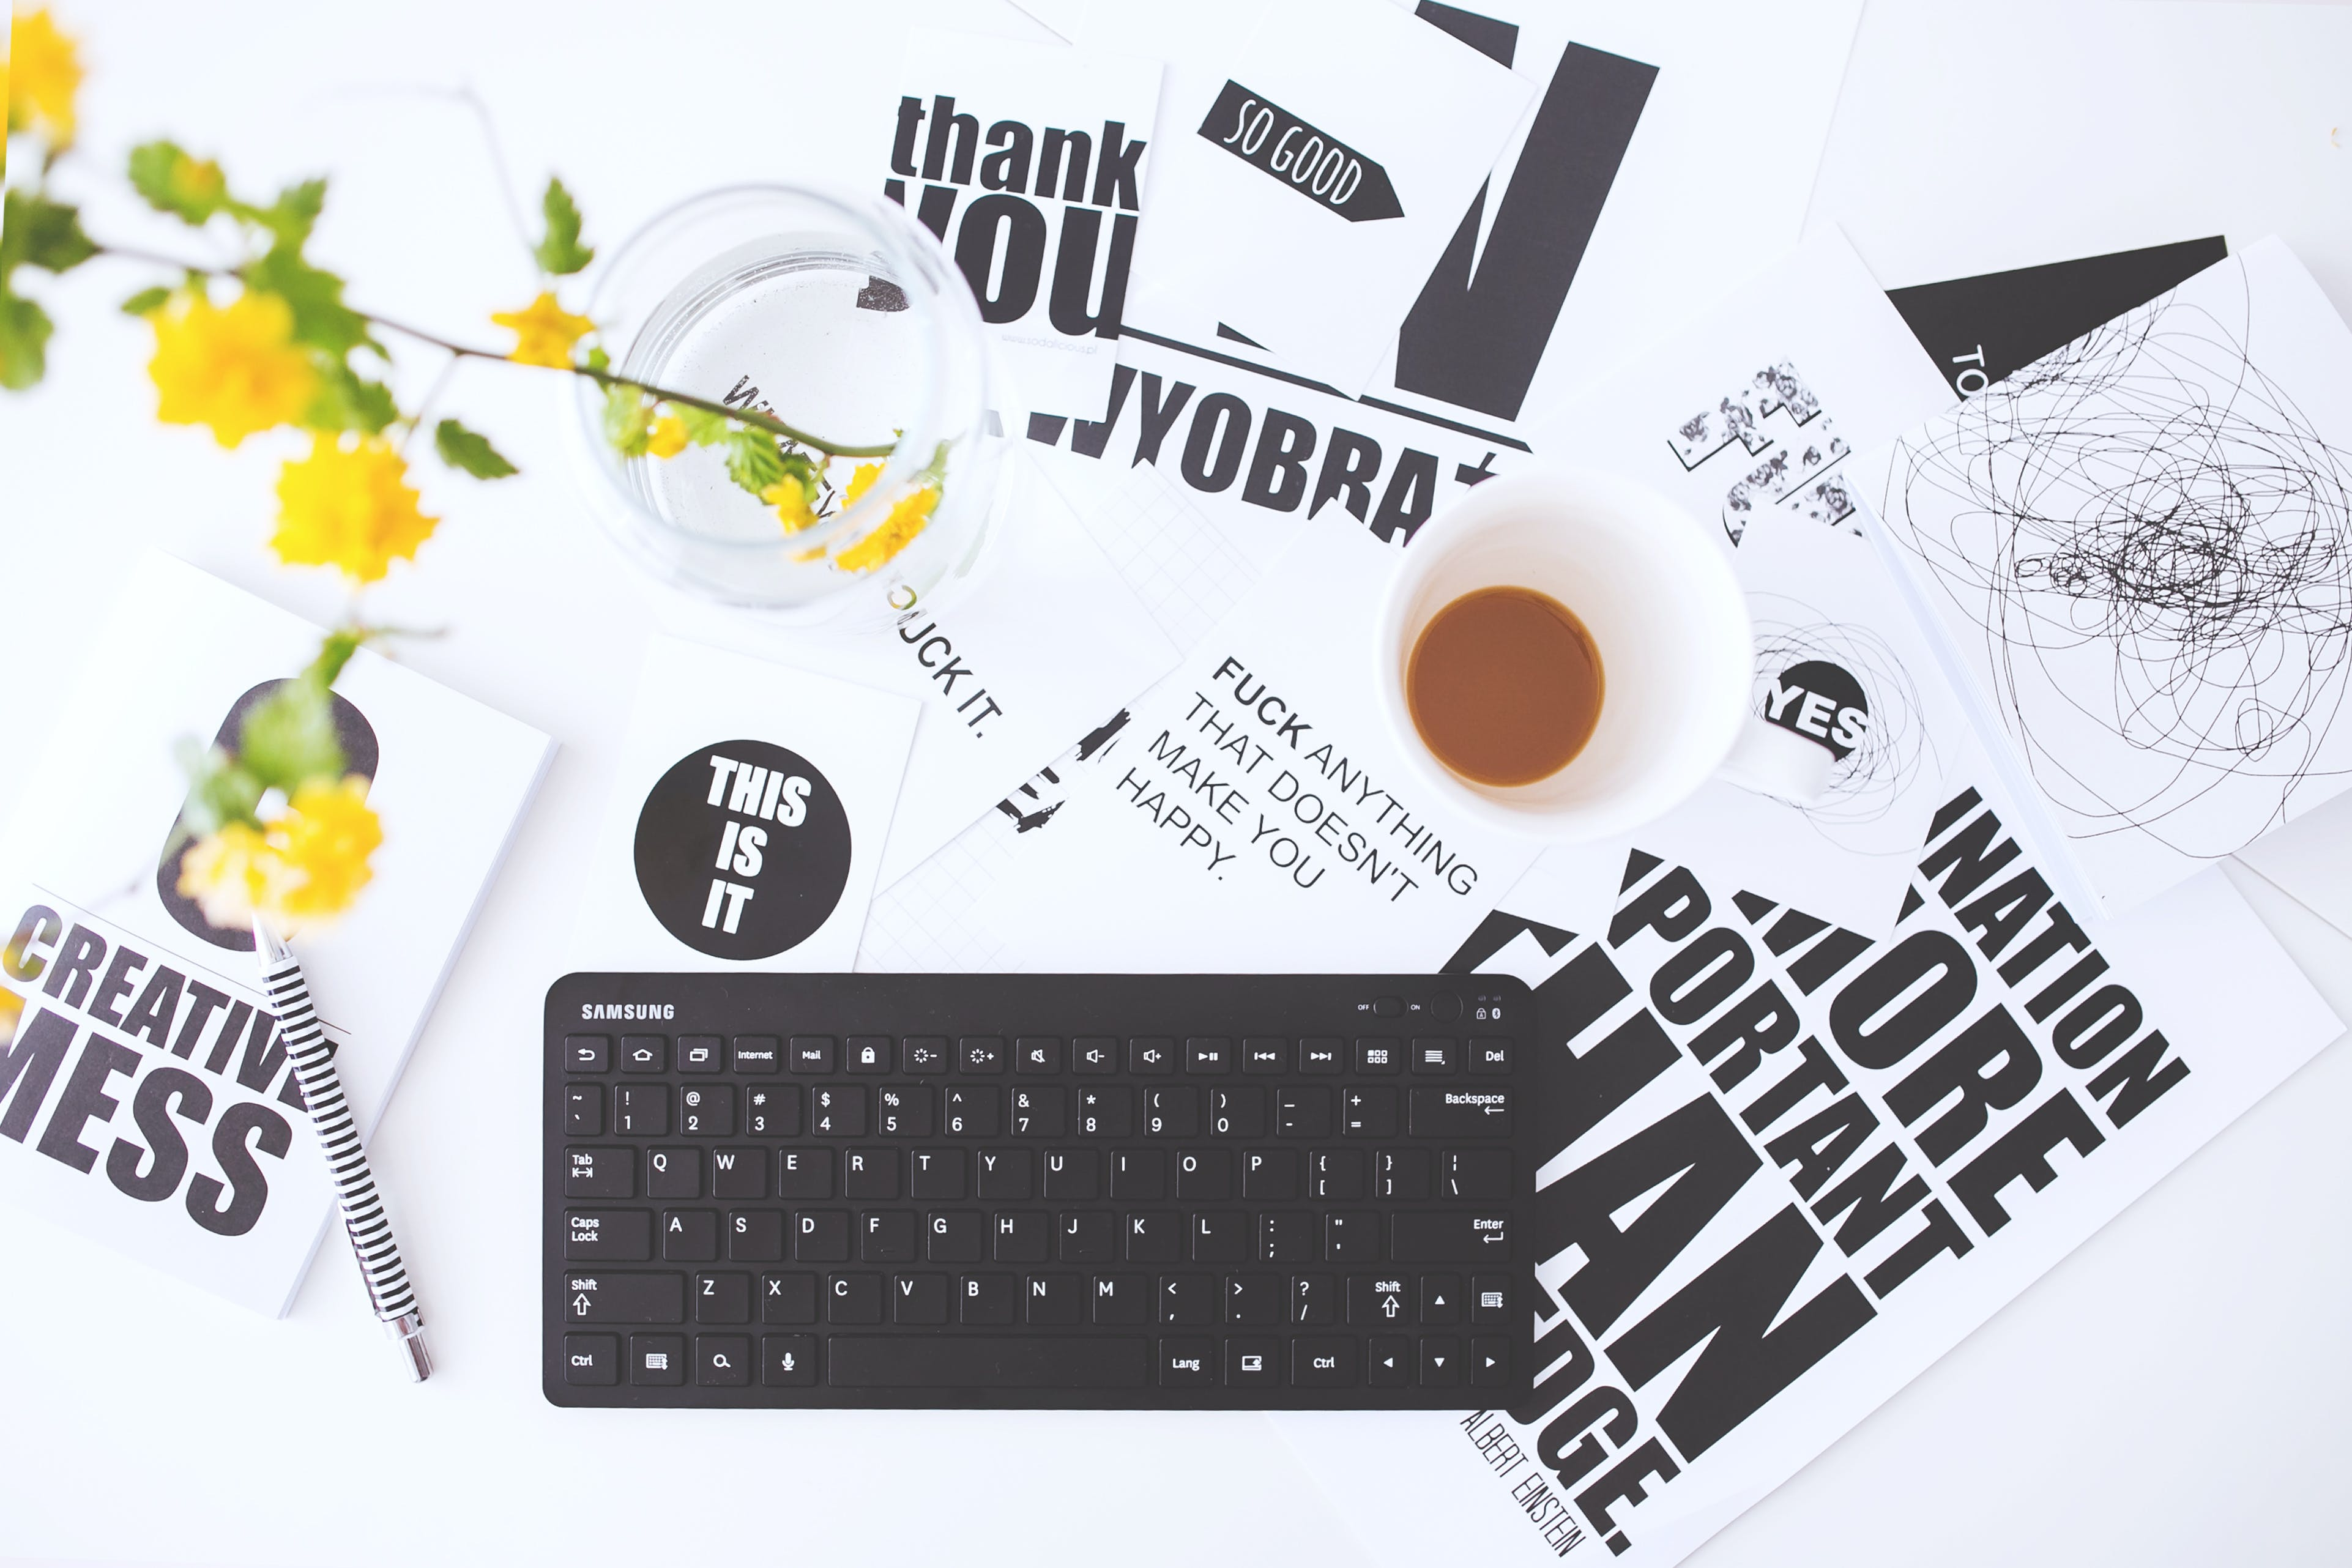 Top view of creative workspace with keyboard and coffee